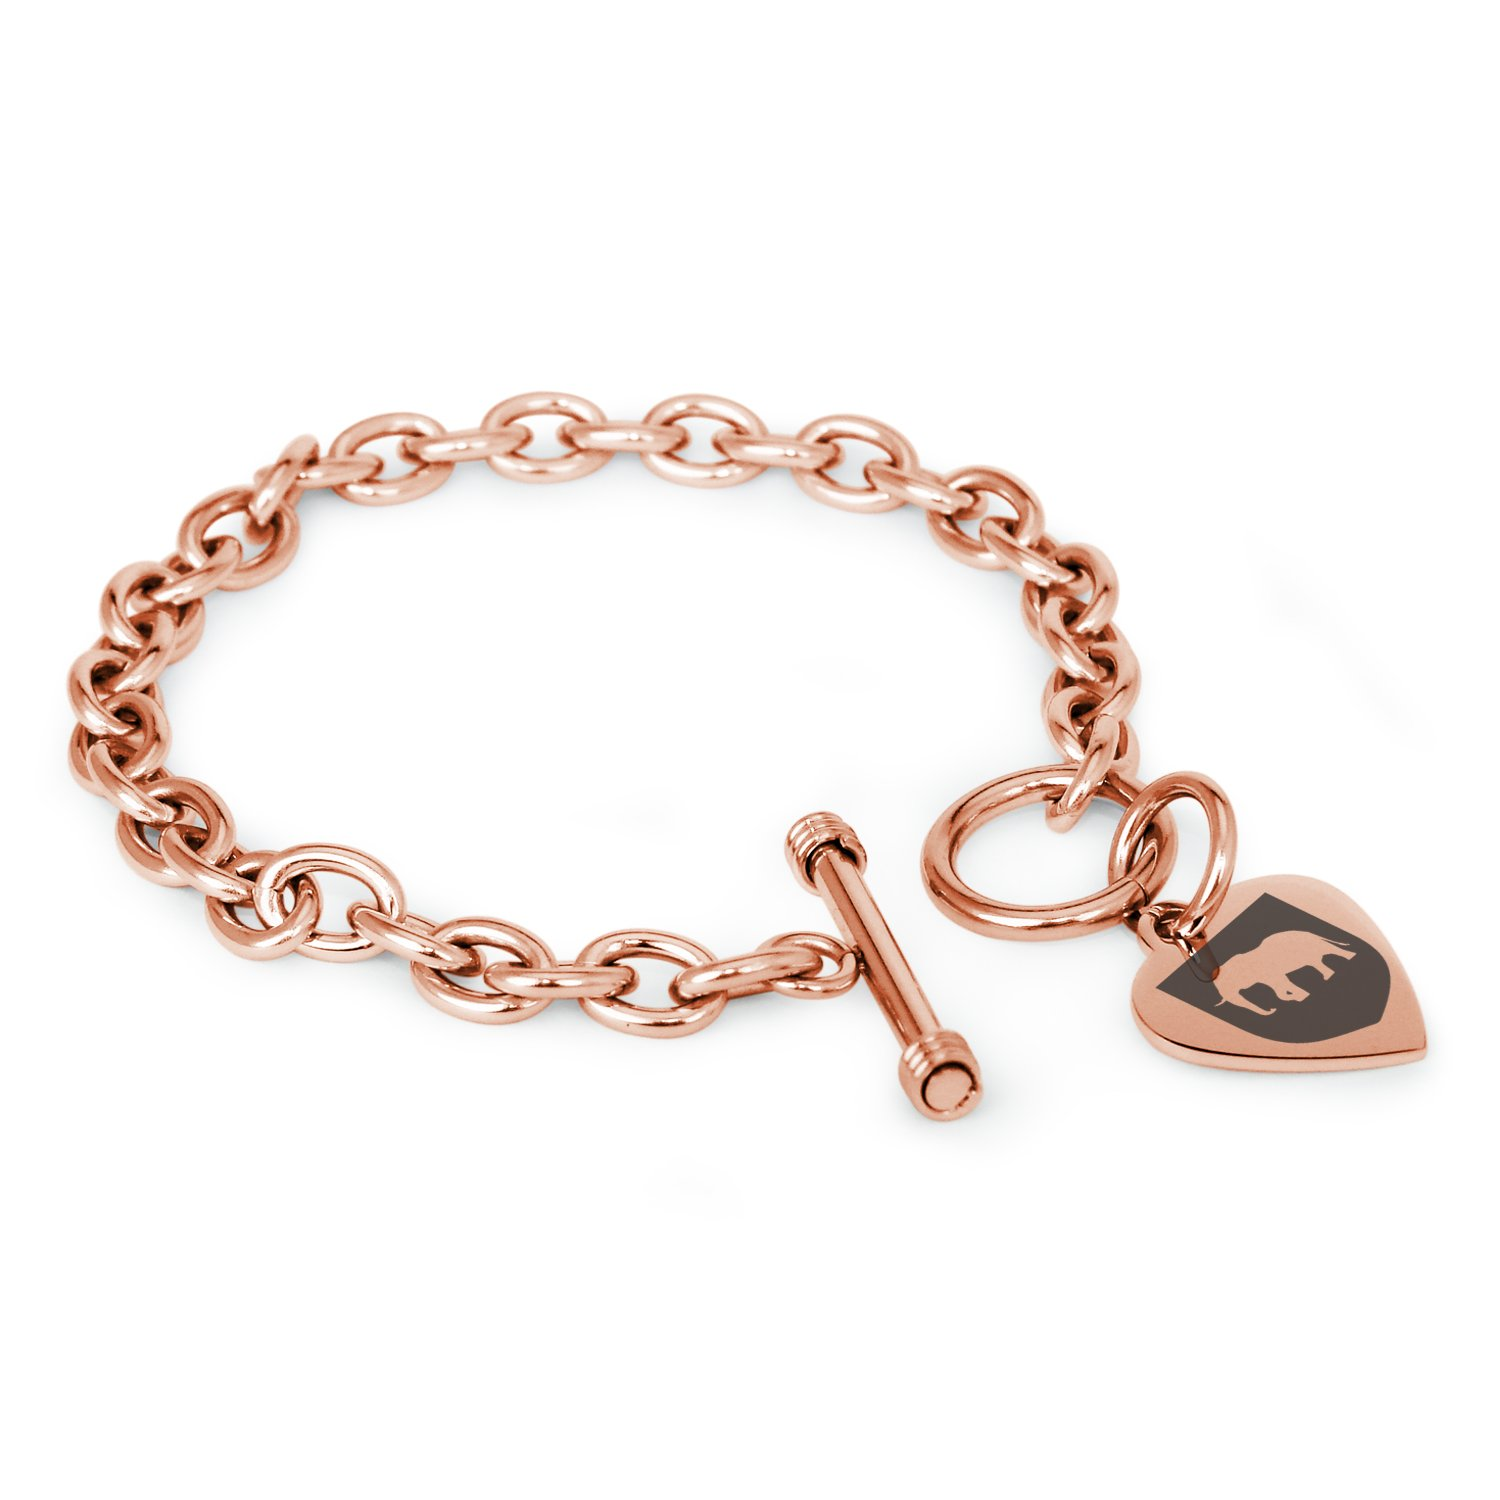 Tioneer Rose Gold Plated Stainless Steel Elephant Strength Coat of Arms Shield Symbols Heart Charm, Bracelet Only